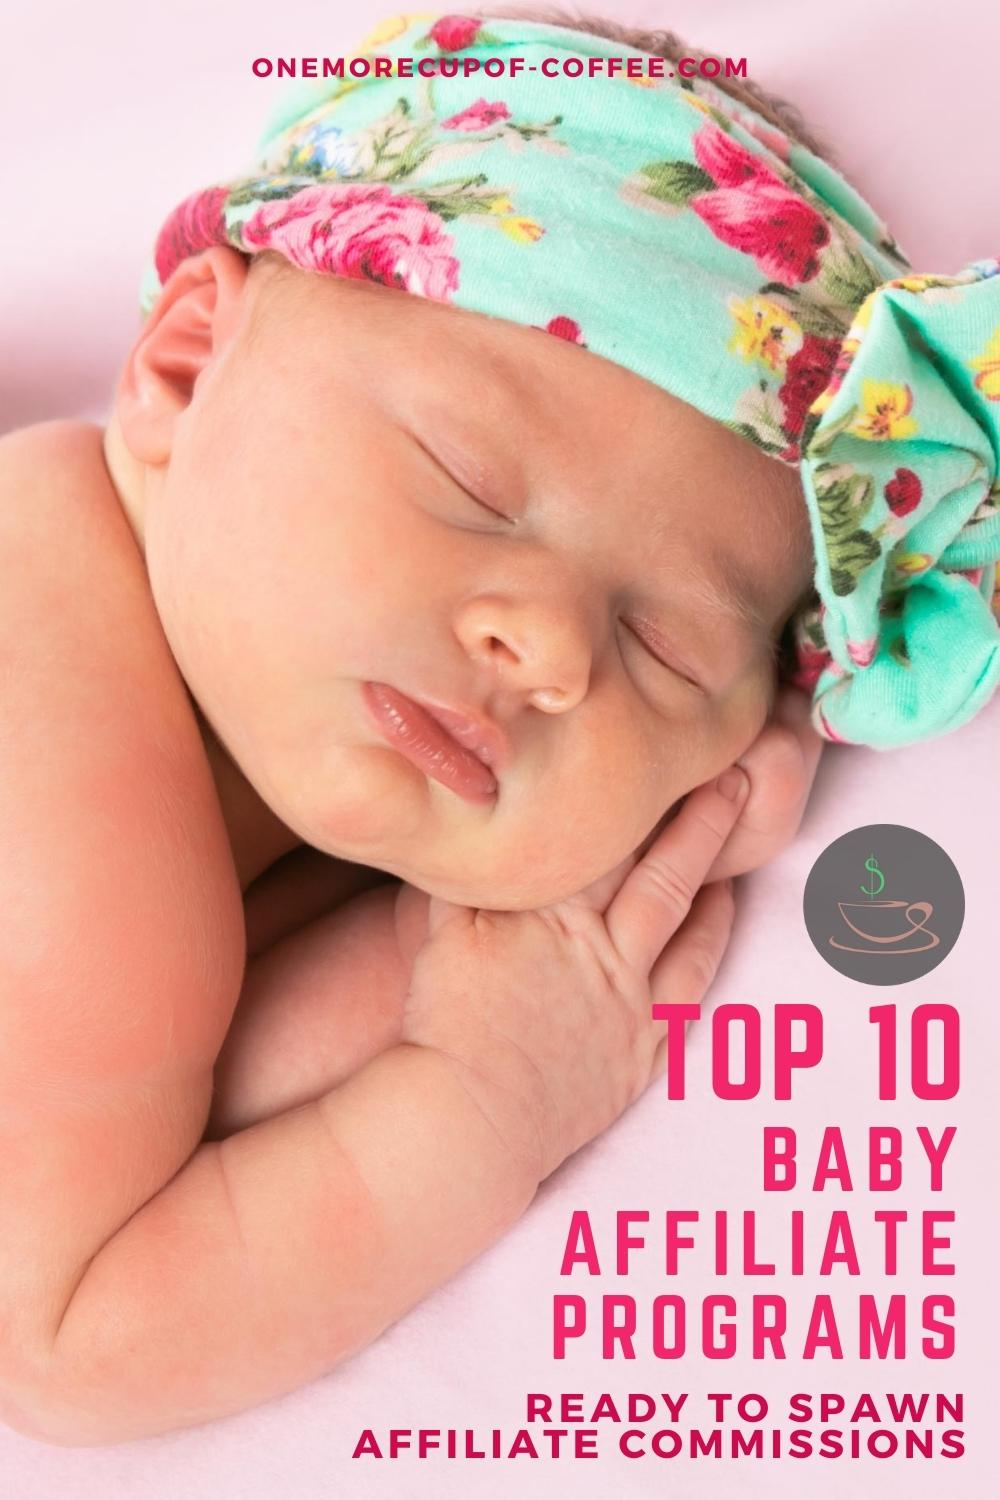 """sleeping baby with floral head band on a pink blanket, with text overlay """"Top 10 Baby Affiliate Programs Ready To Spawn Affiliate Commissions"""""""